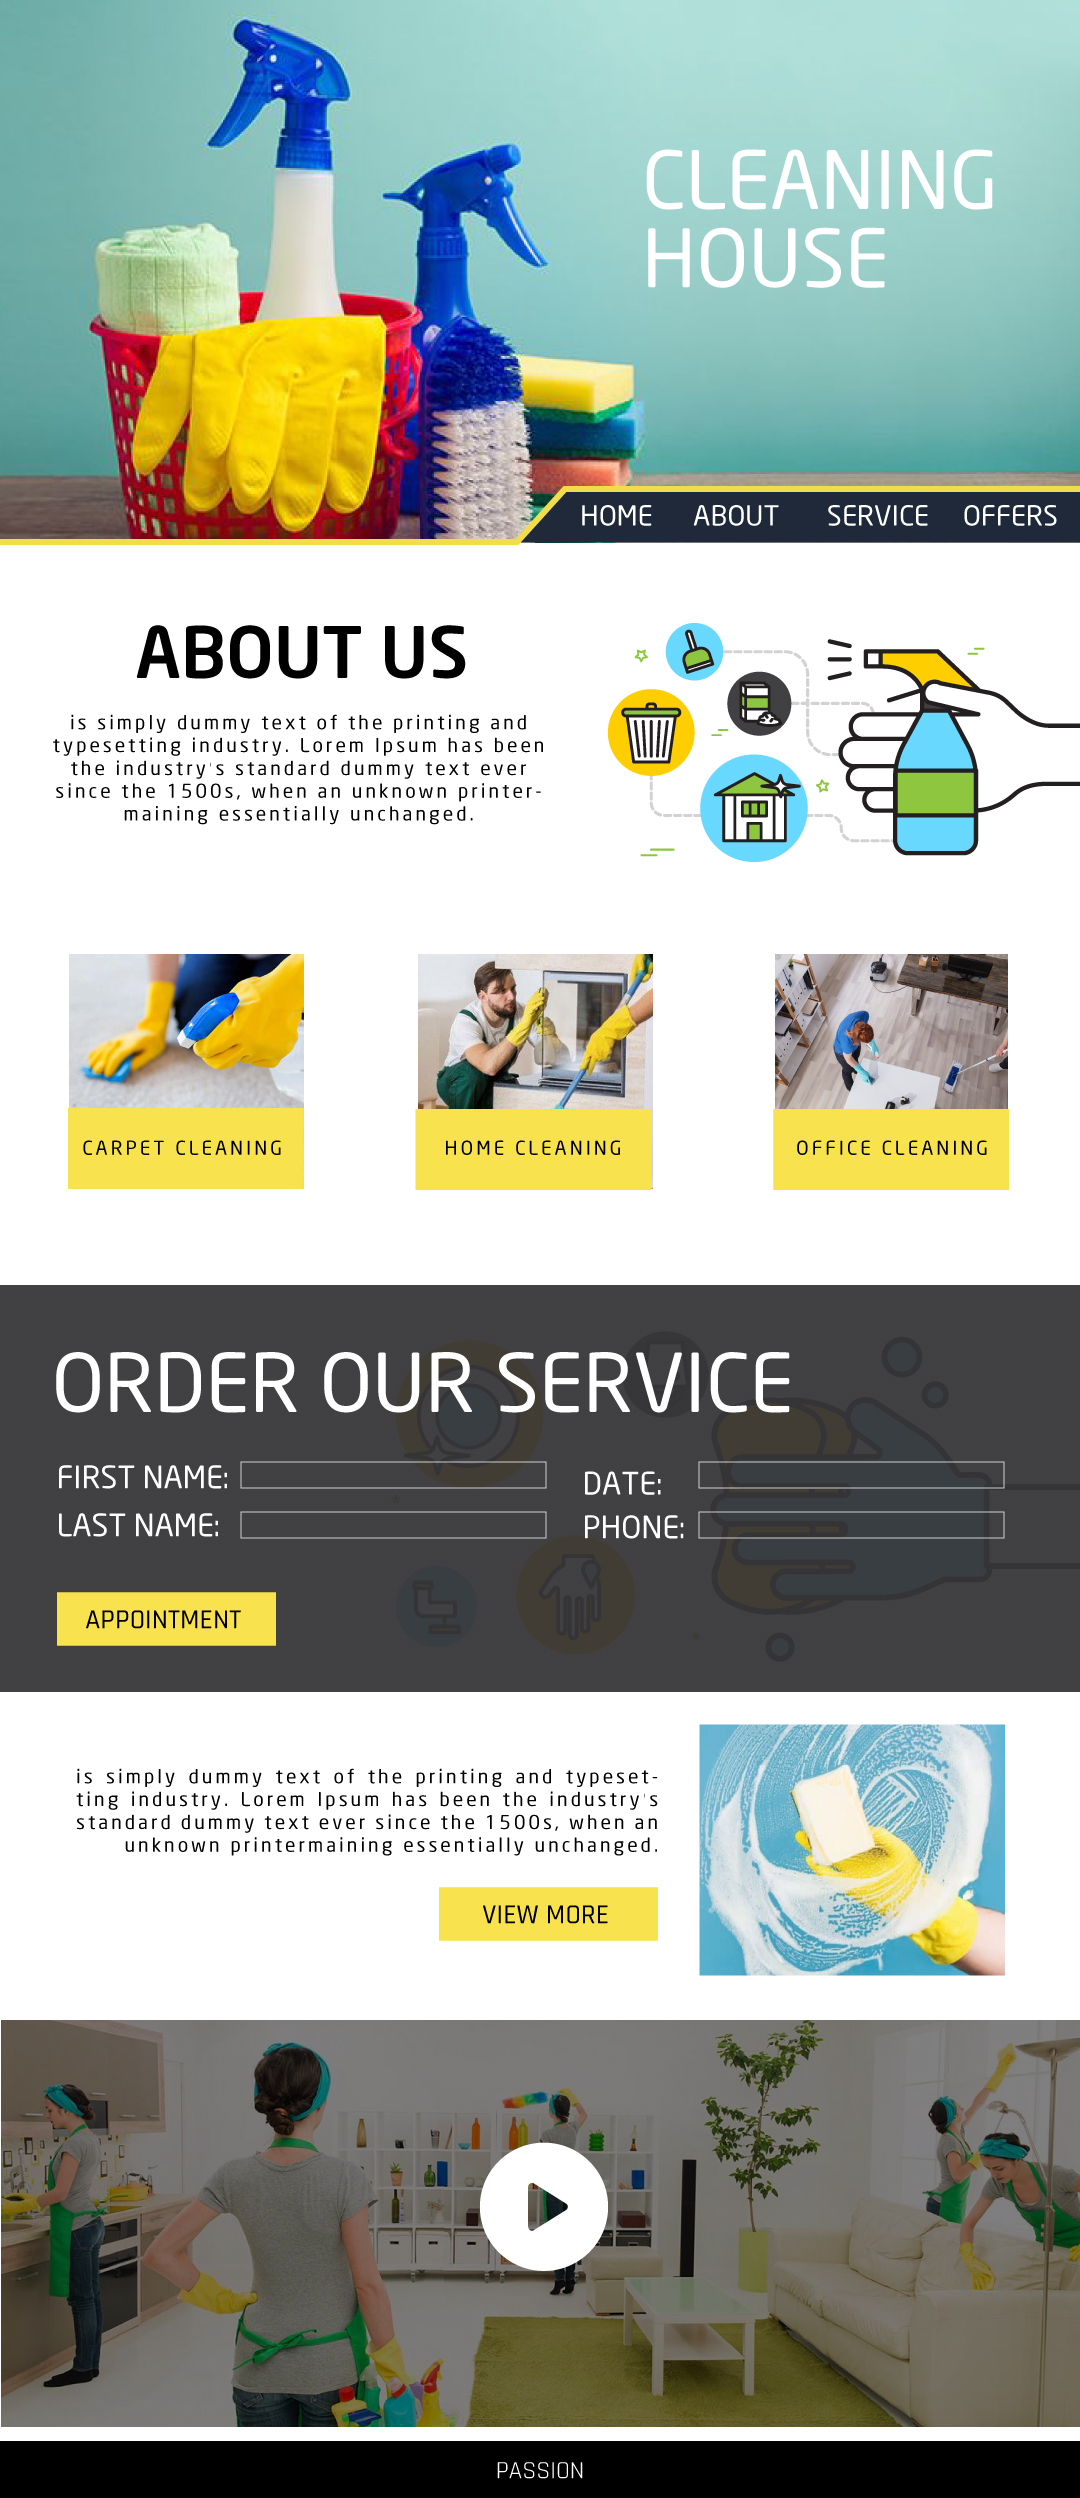 Design a website template for a cleaning company